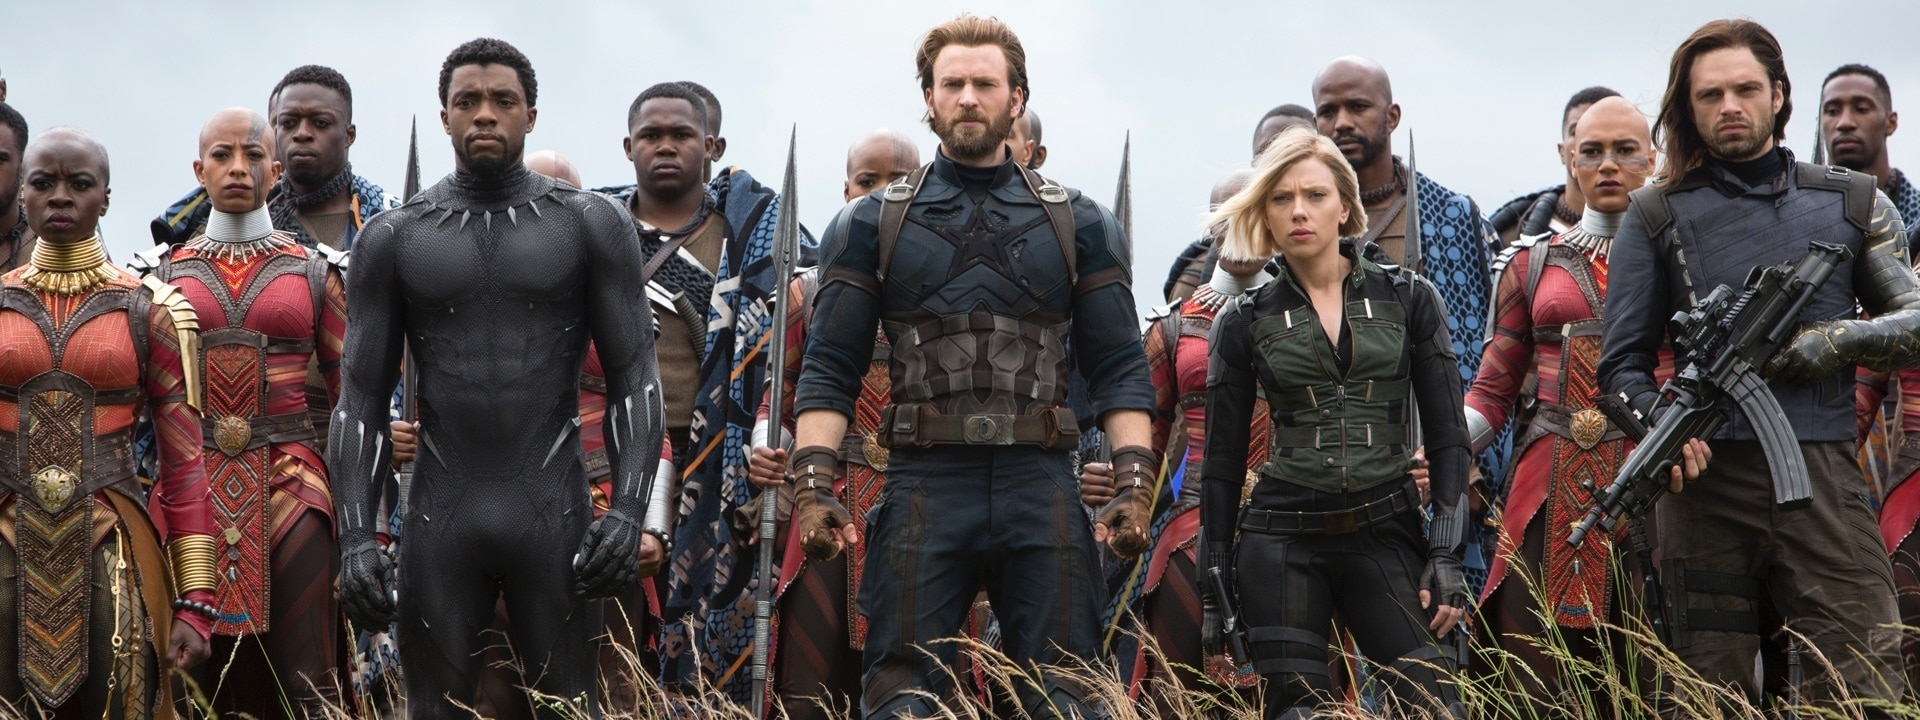 'Avengers Infinity War' Wakanda Battle with Black Panther, Captain America, Black Widow and Bucky